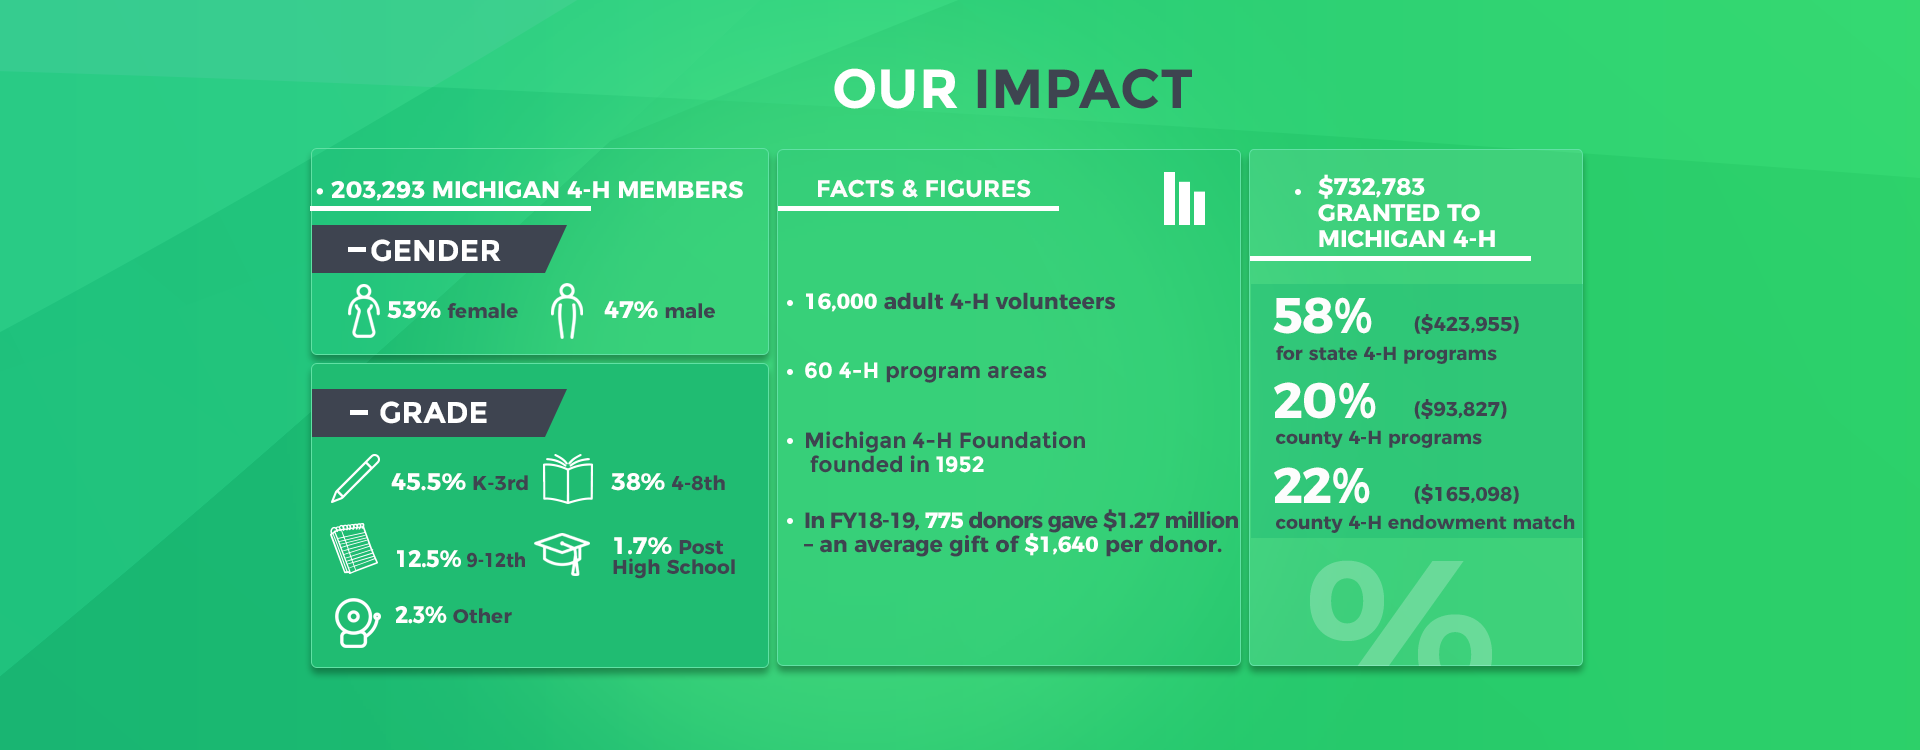 Our Impact FY18-19